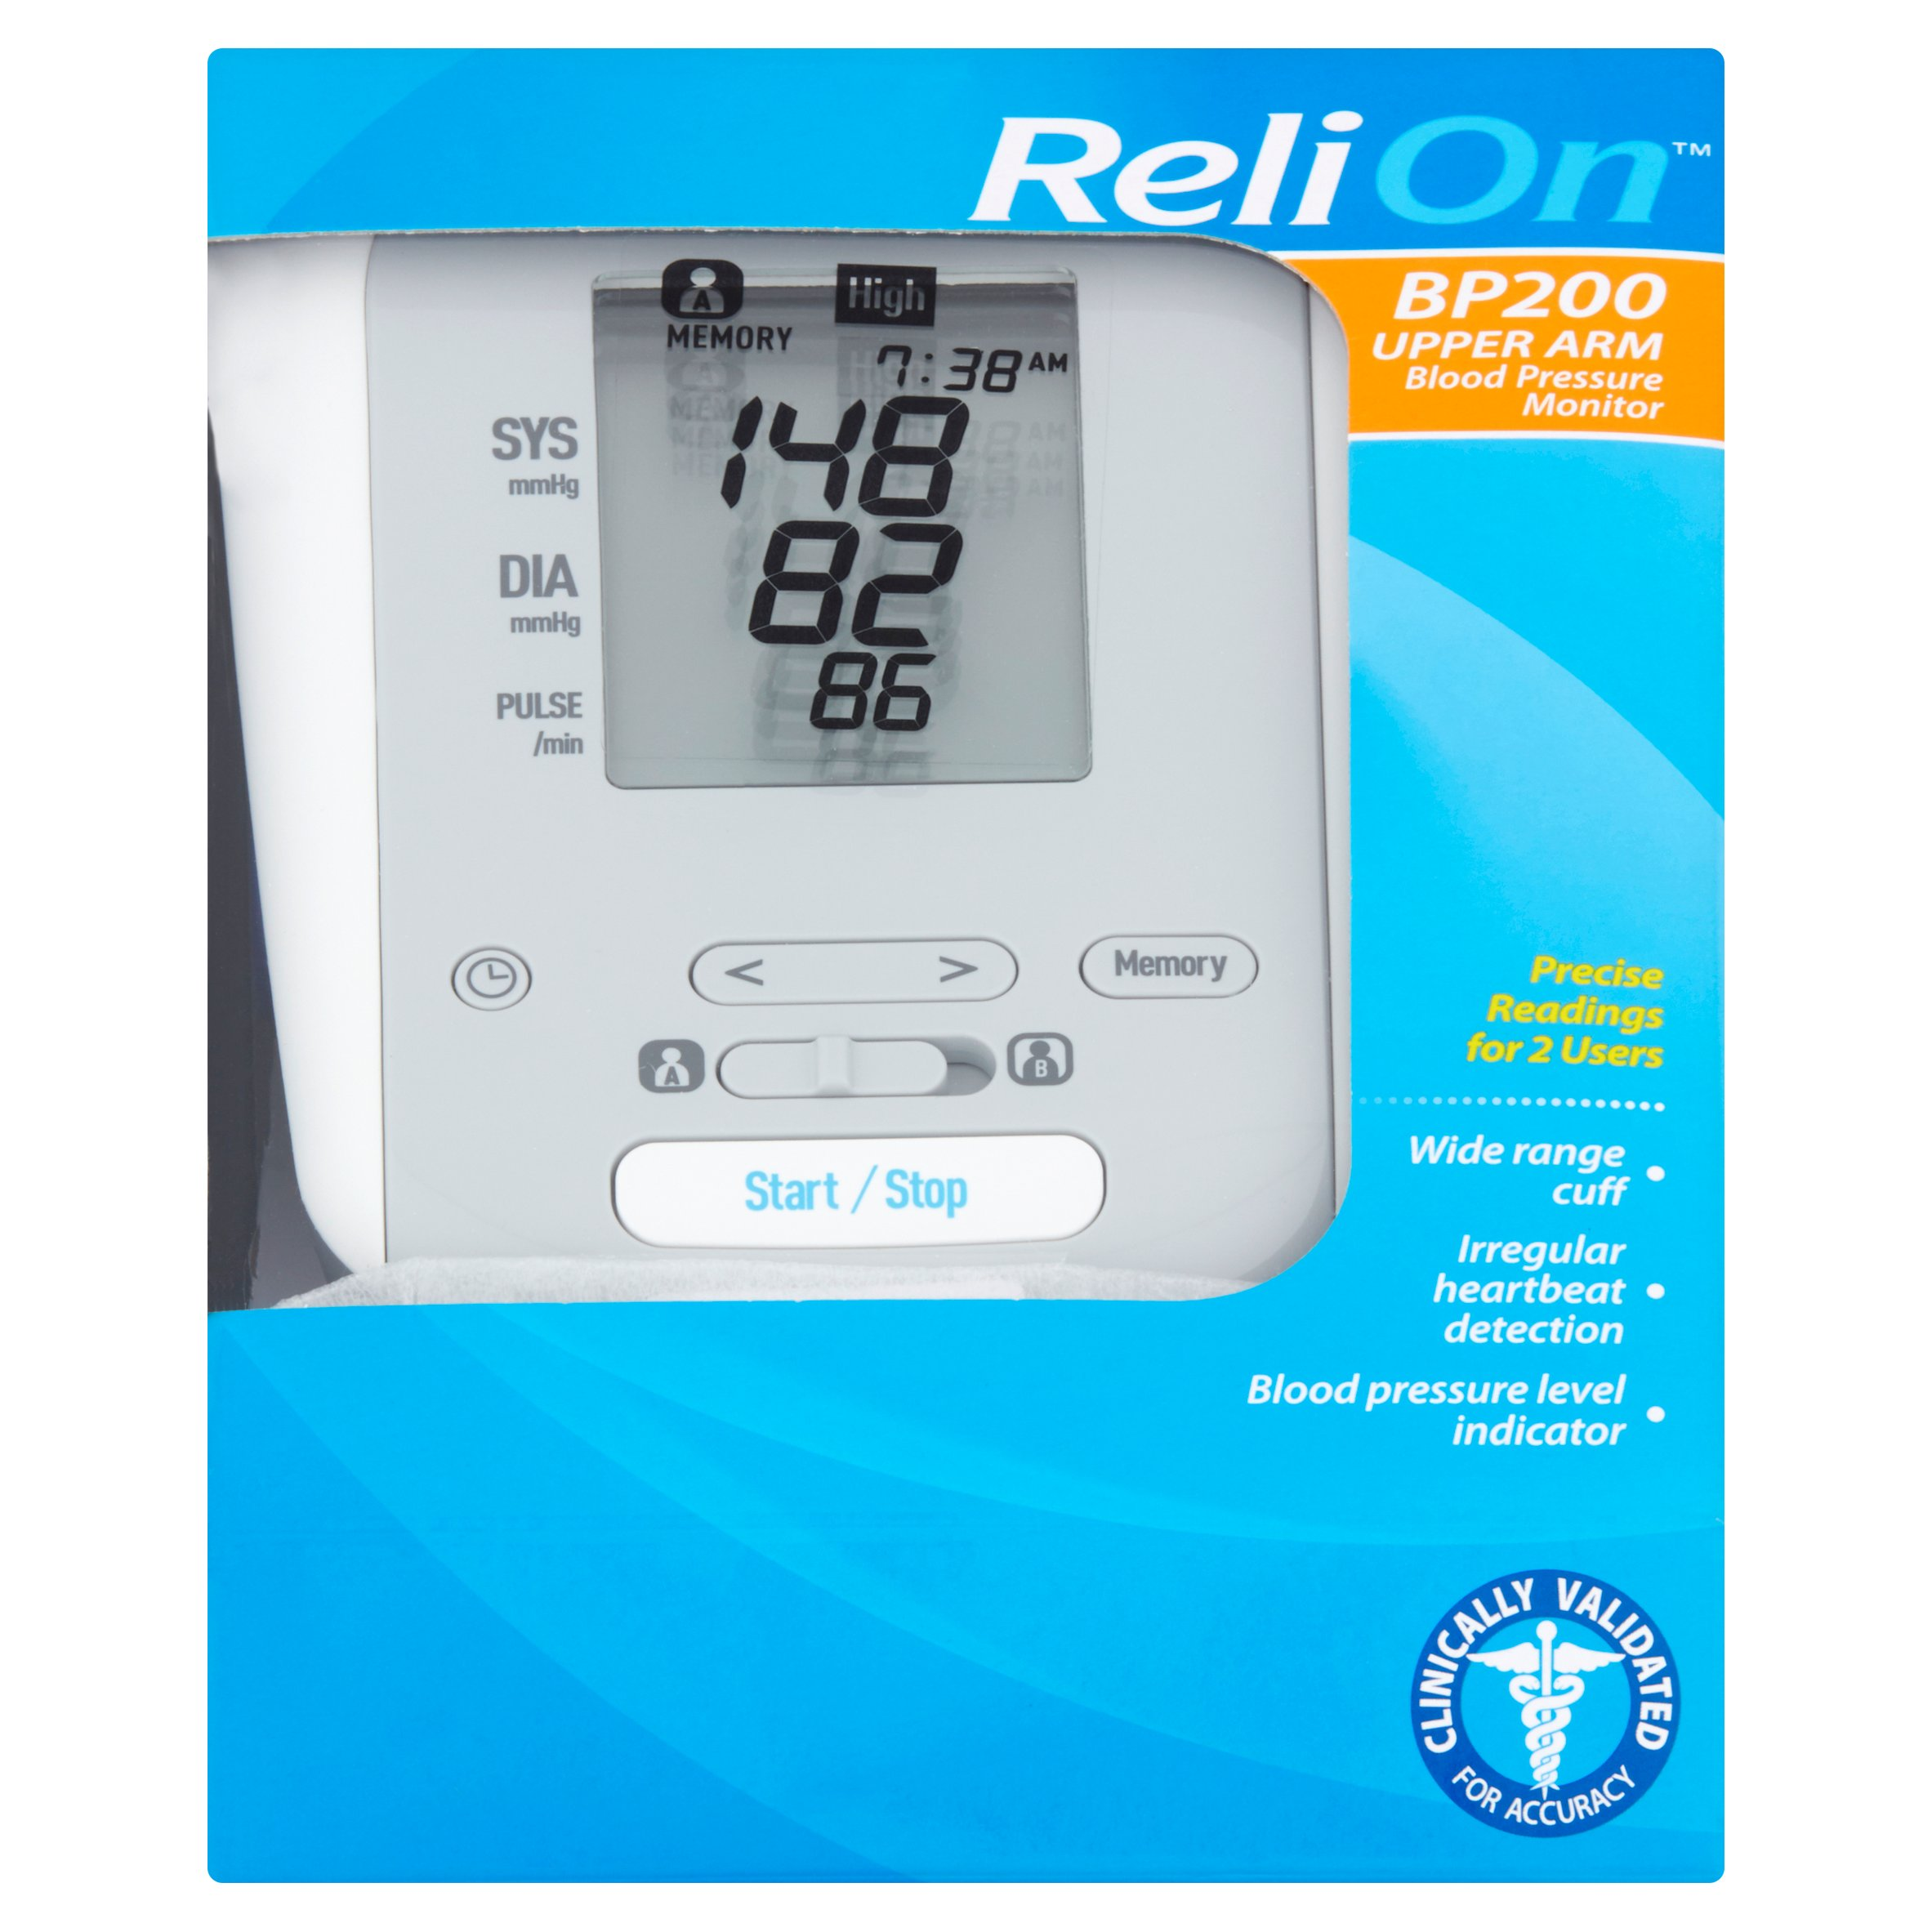 ReliOn bp200 upper arm blood pressure monitor